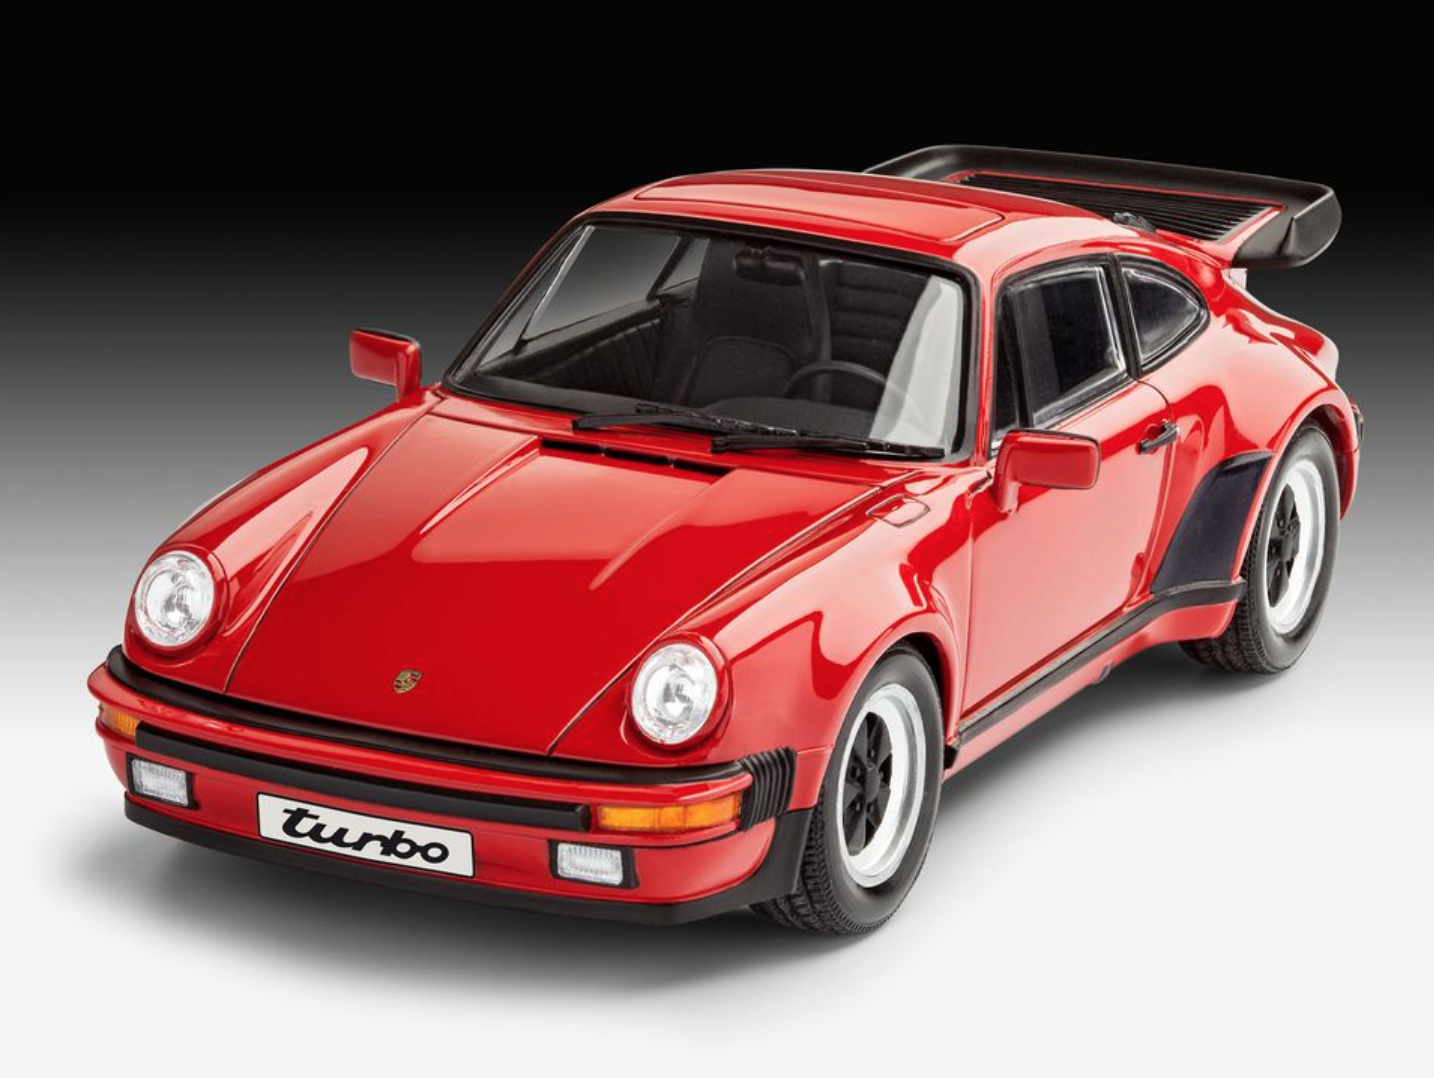 Car Detailing Supplies >> Porsche 911 Turbo by Revell (1:24 scale) - Choice Gear